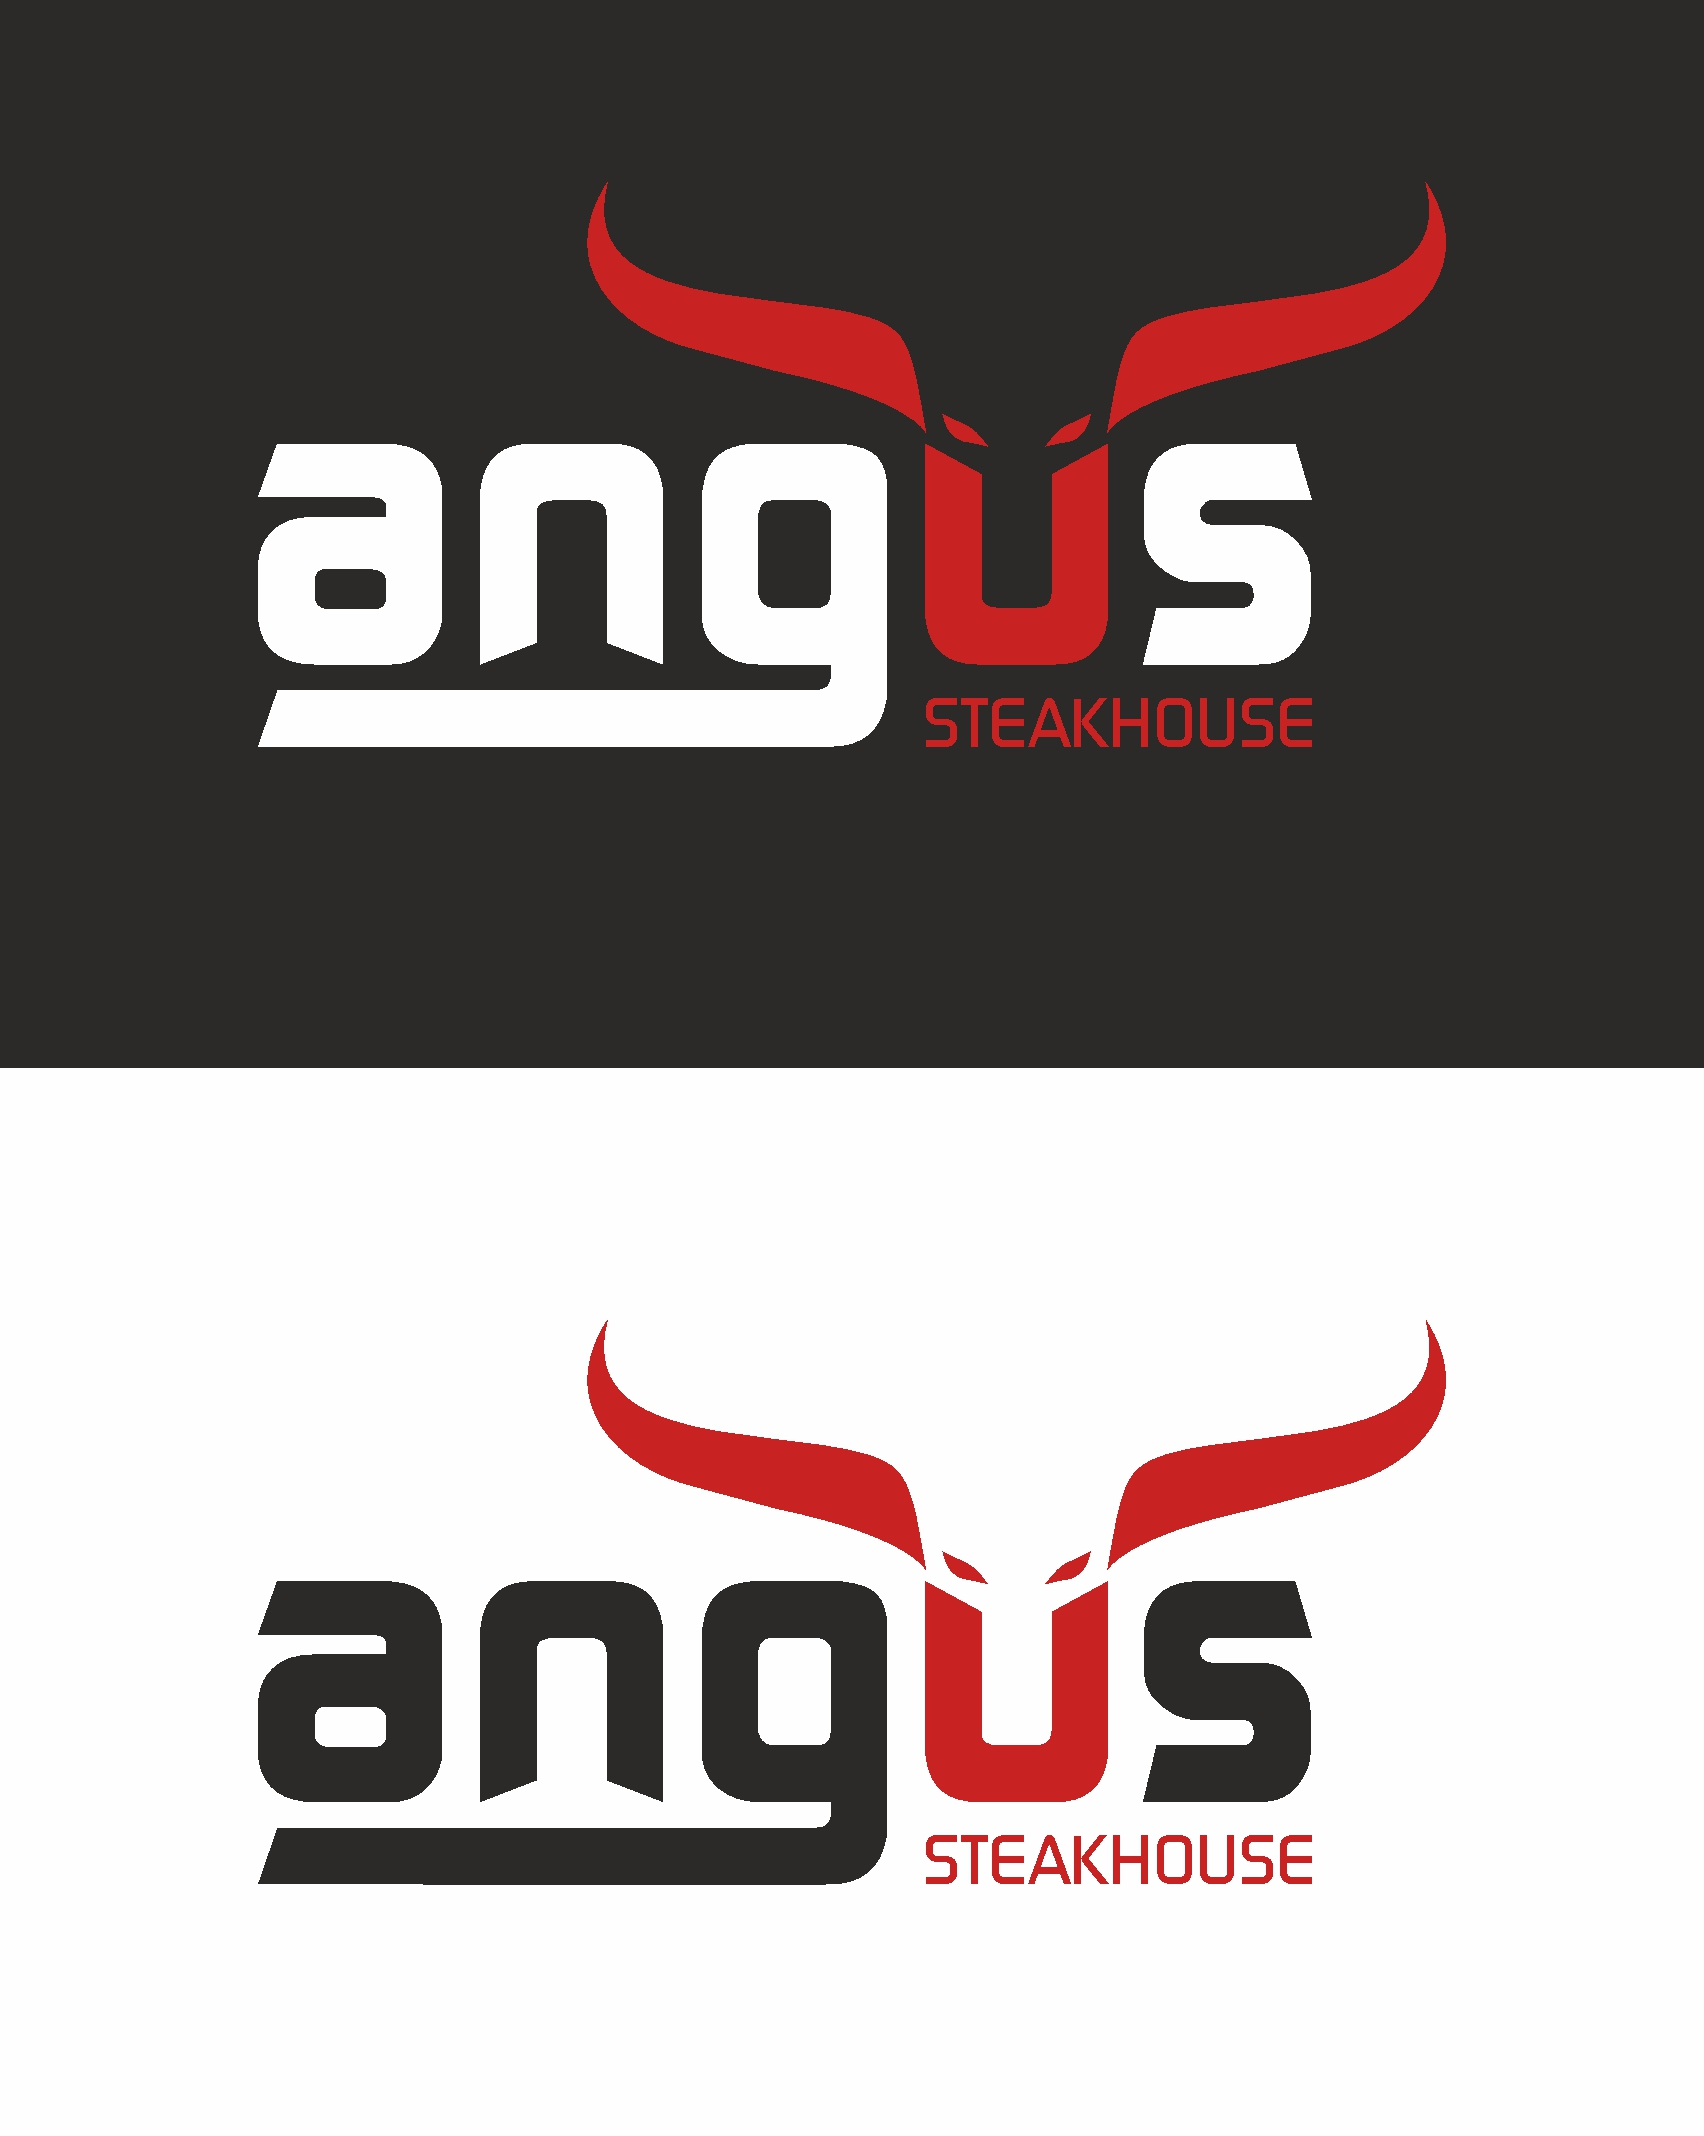 Logo Design by Amit Kaushik - Entry No. 29 in the Logo Design Contest Imaginative Custom Design for Angus Steakhouse.